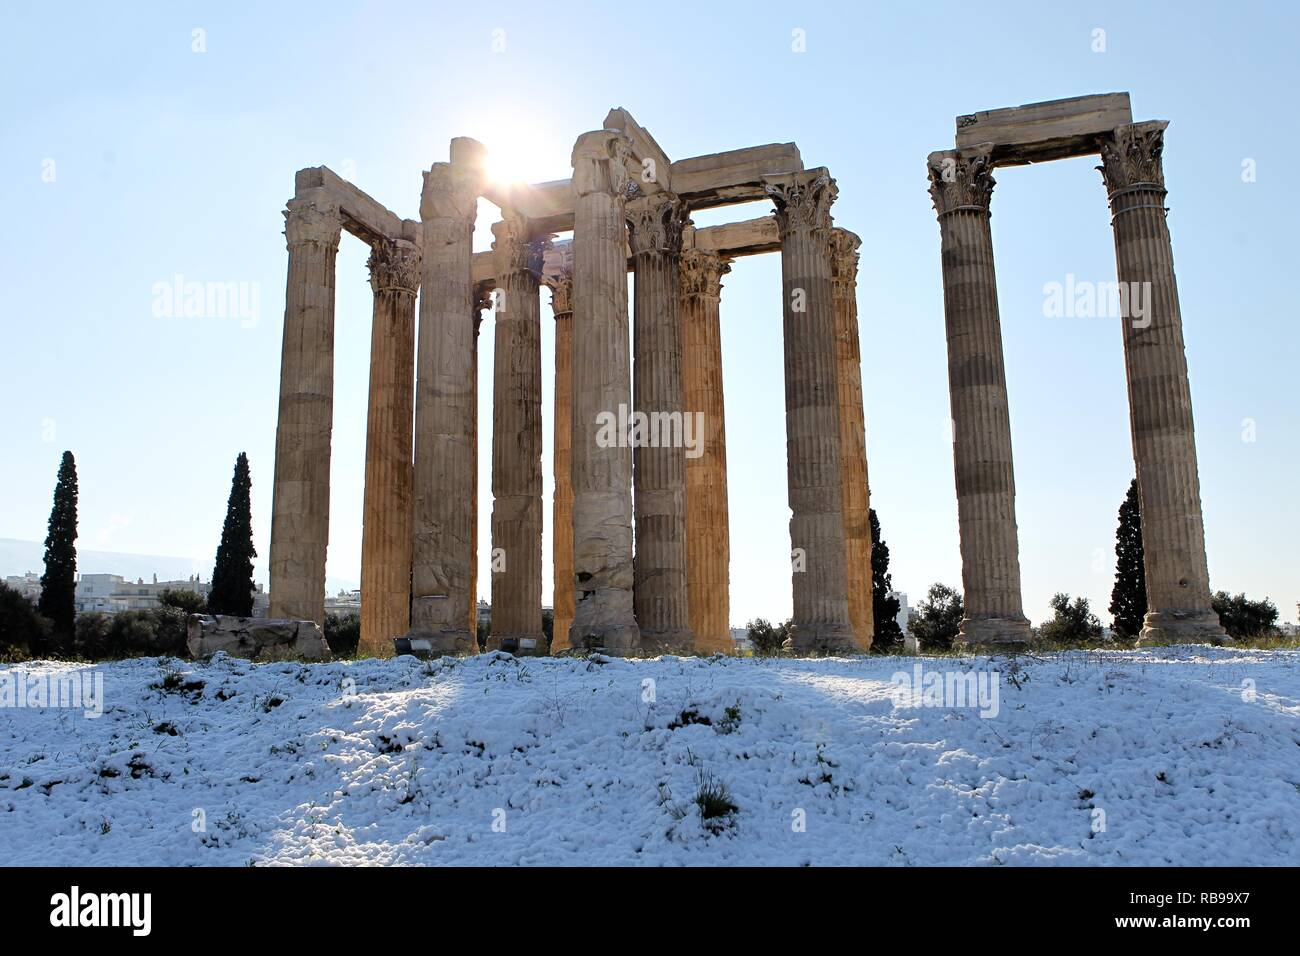 Athens, Greece. 8th Jan, 2019. The ancient Temple of Olympian Zeus, after a snowfall in Athens, on Tuesday. (Credit Image: © Aristidis VafeiadakisZUMA Wire) Credit: ZUMA Press, Inc./Alamy Live News - Stock Image